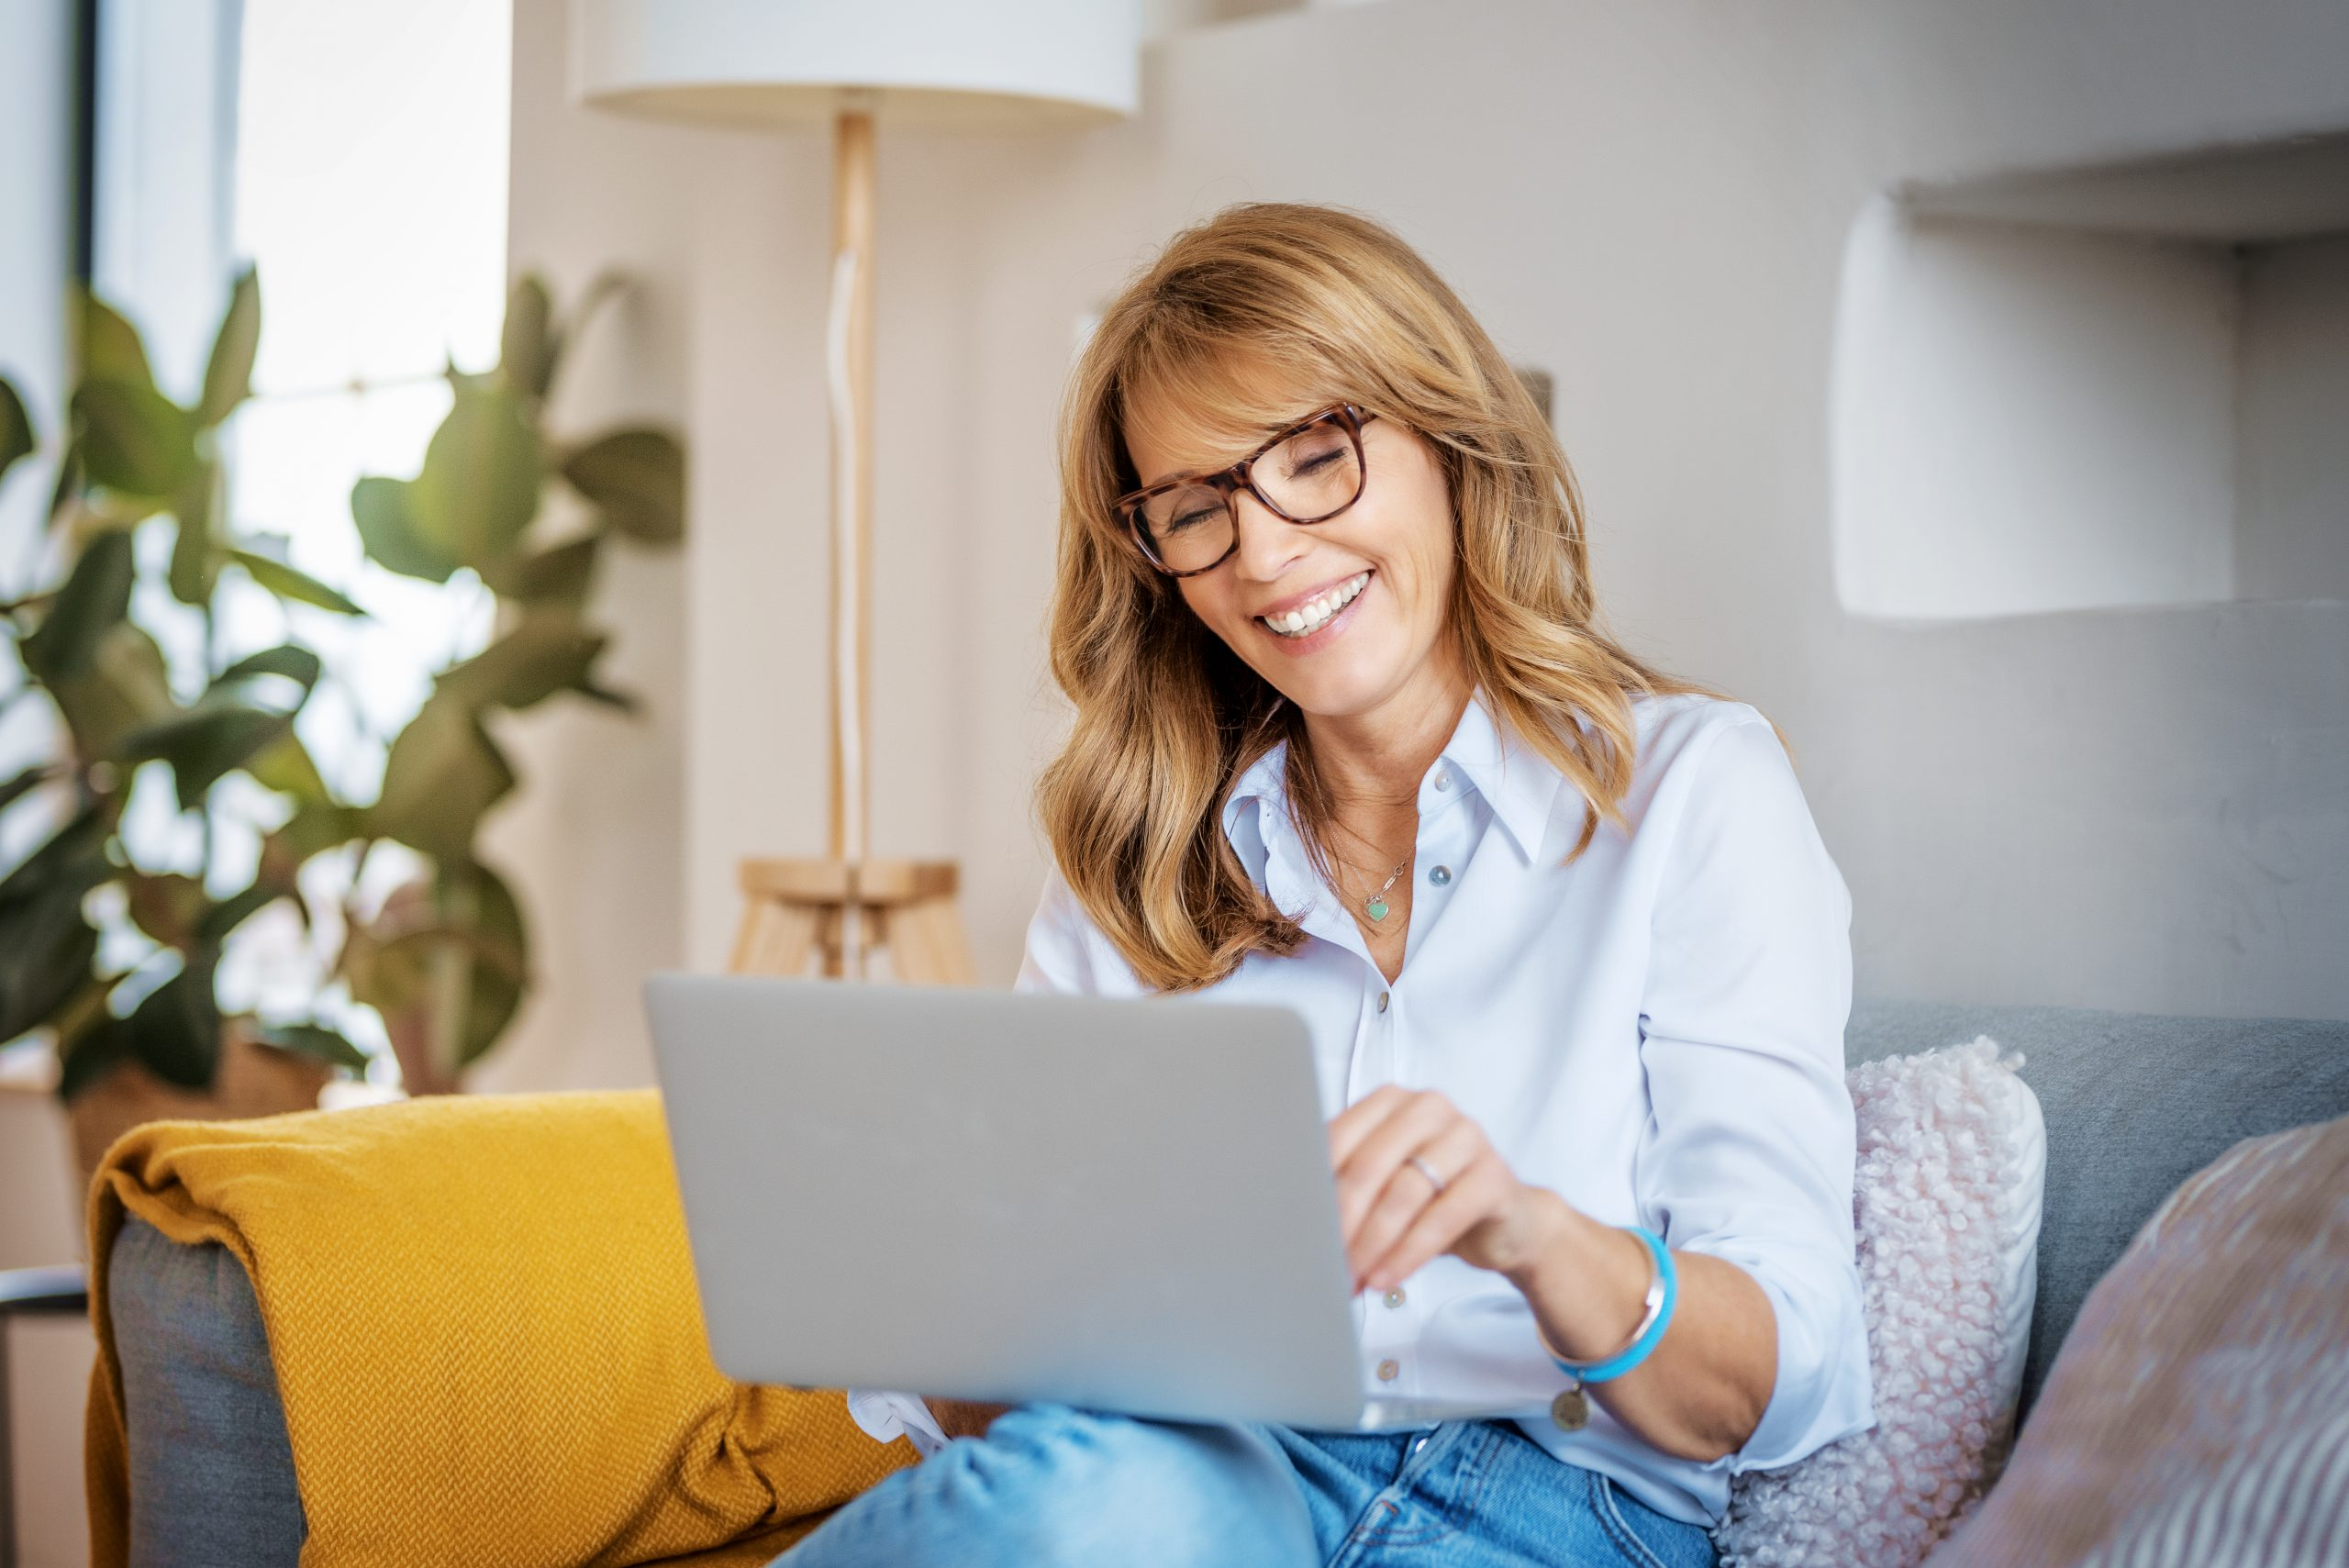 Happy woman using laptop while sitting on the couch at home